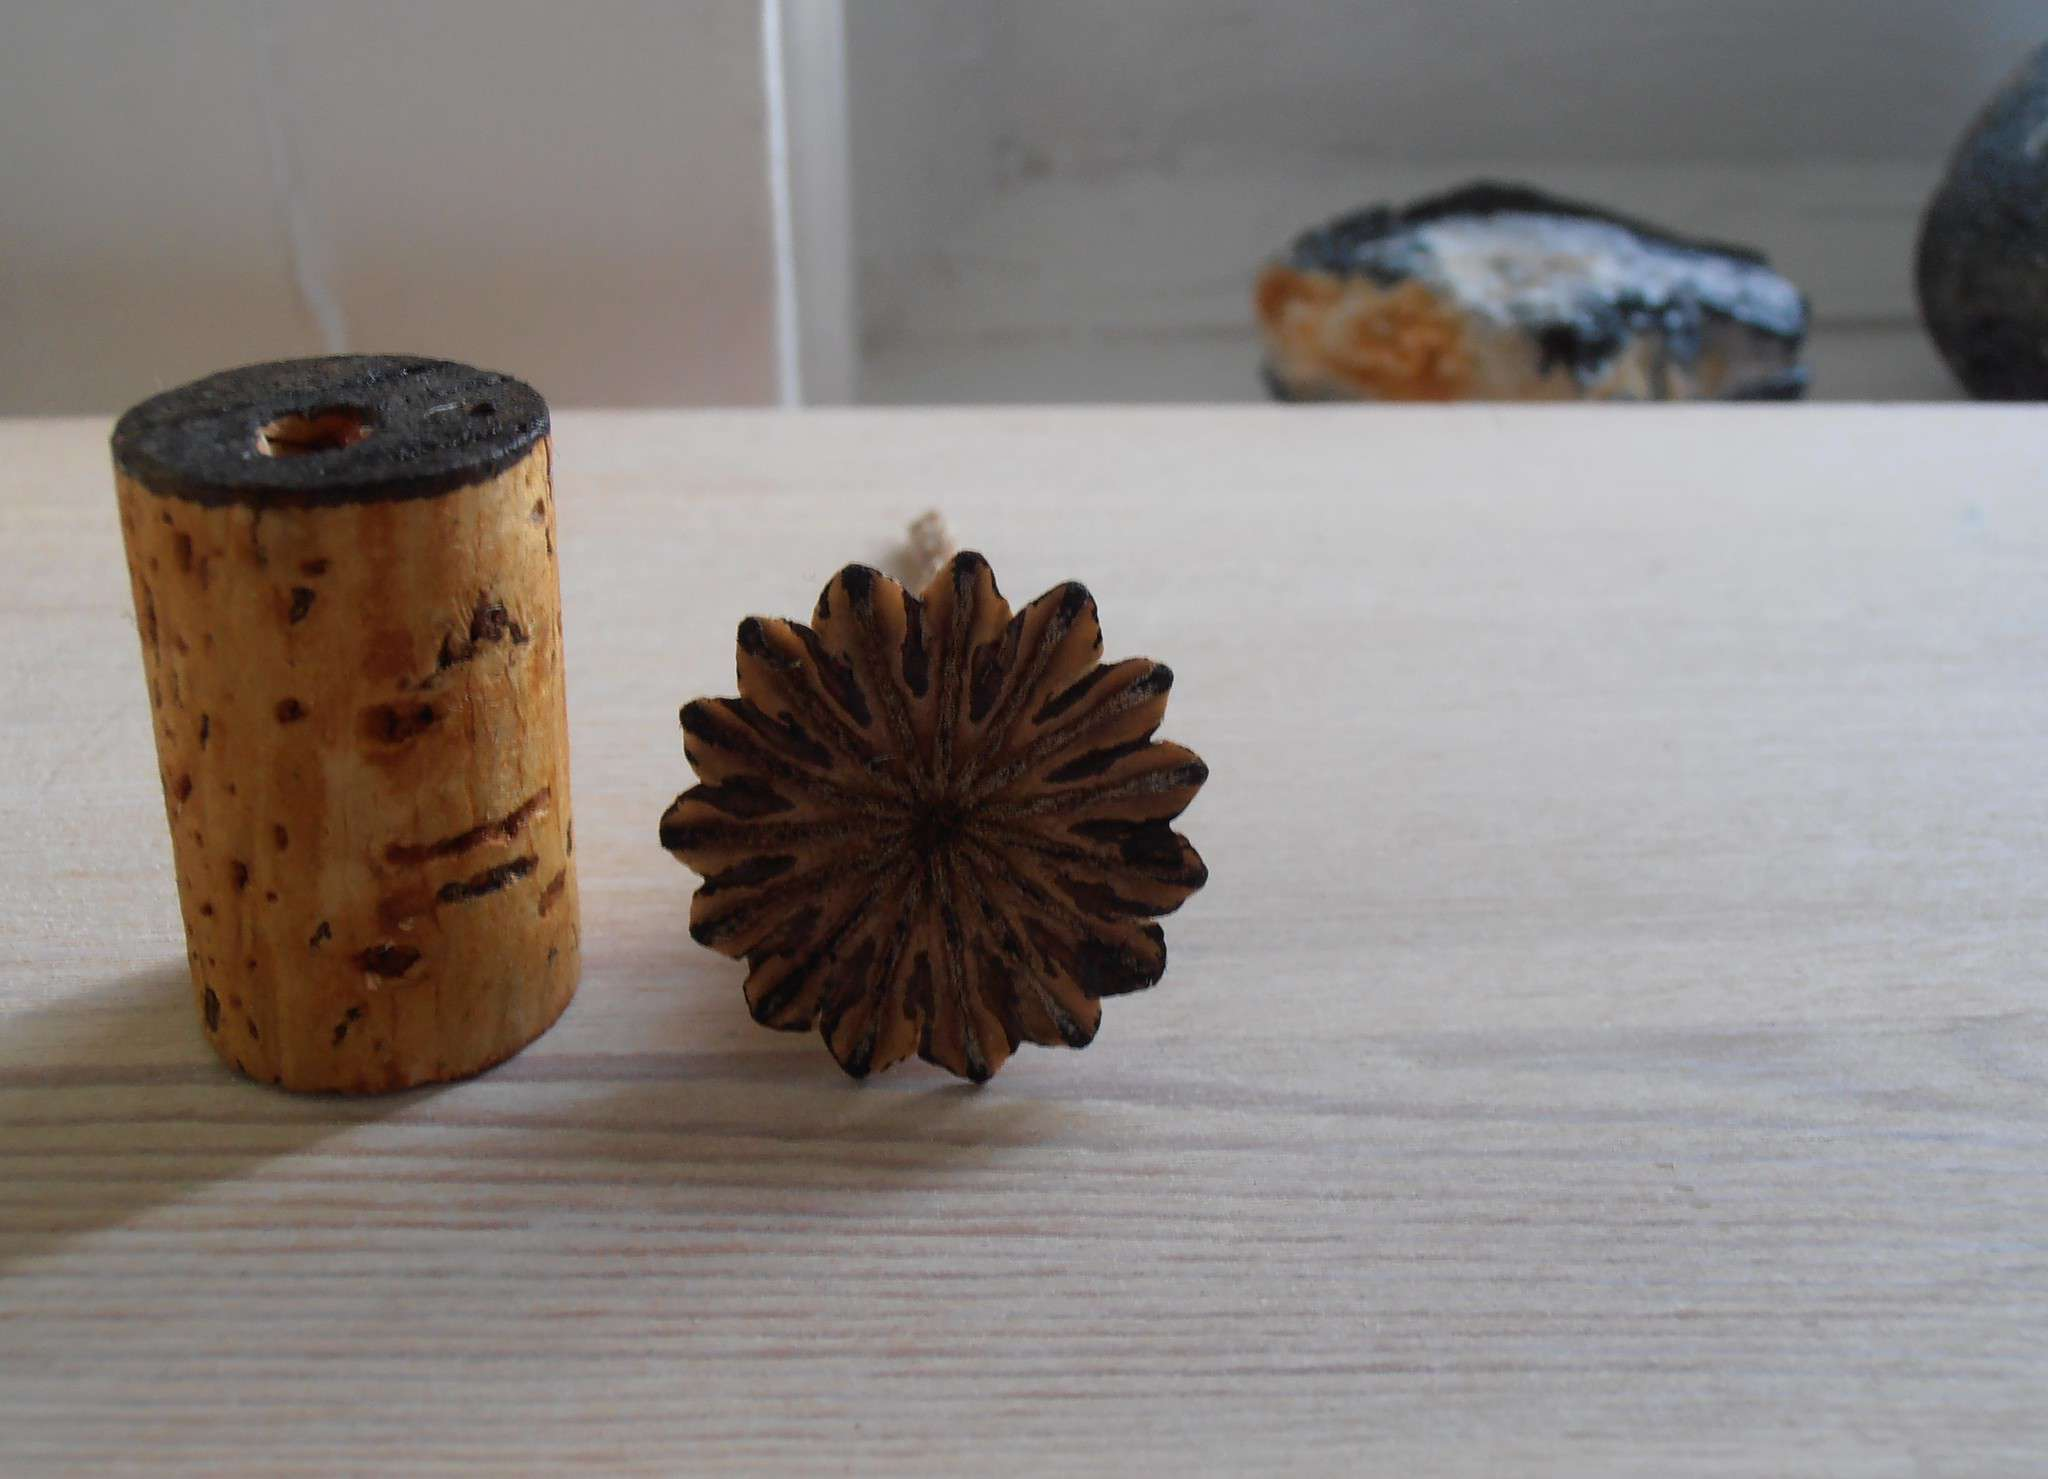 Stamps made from a wine cork and a dried flower